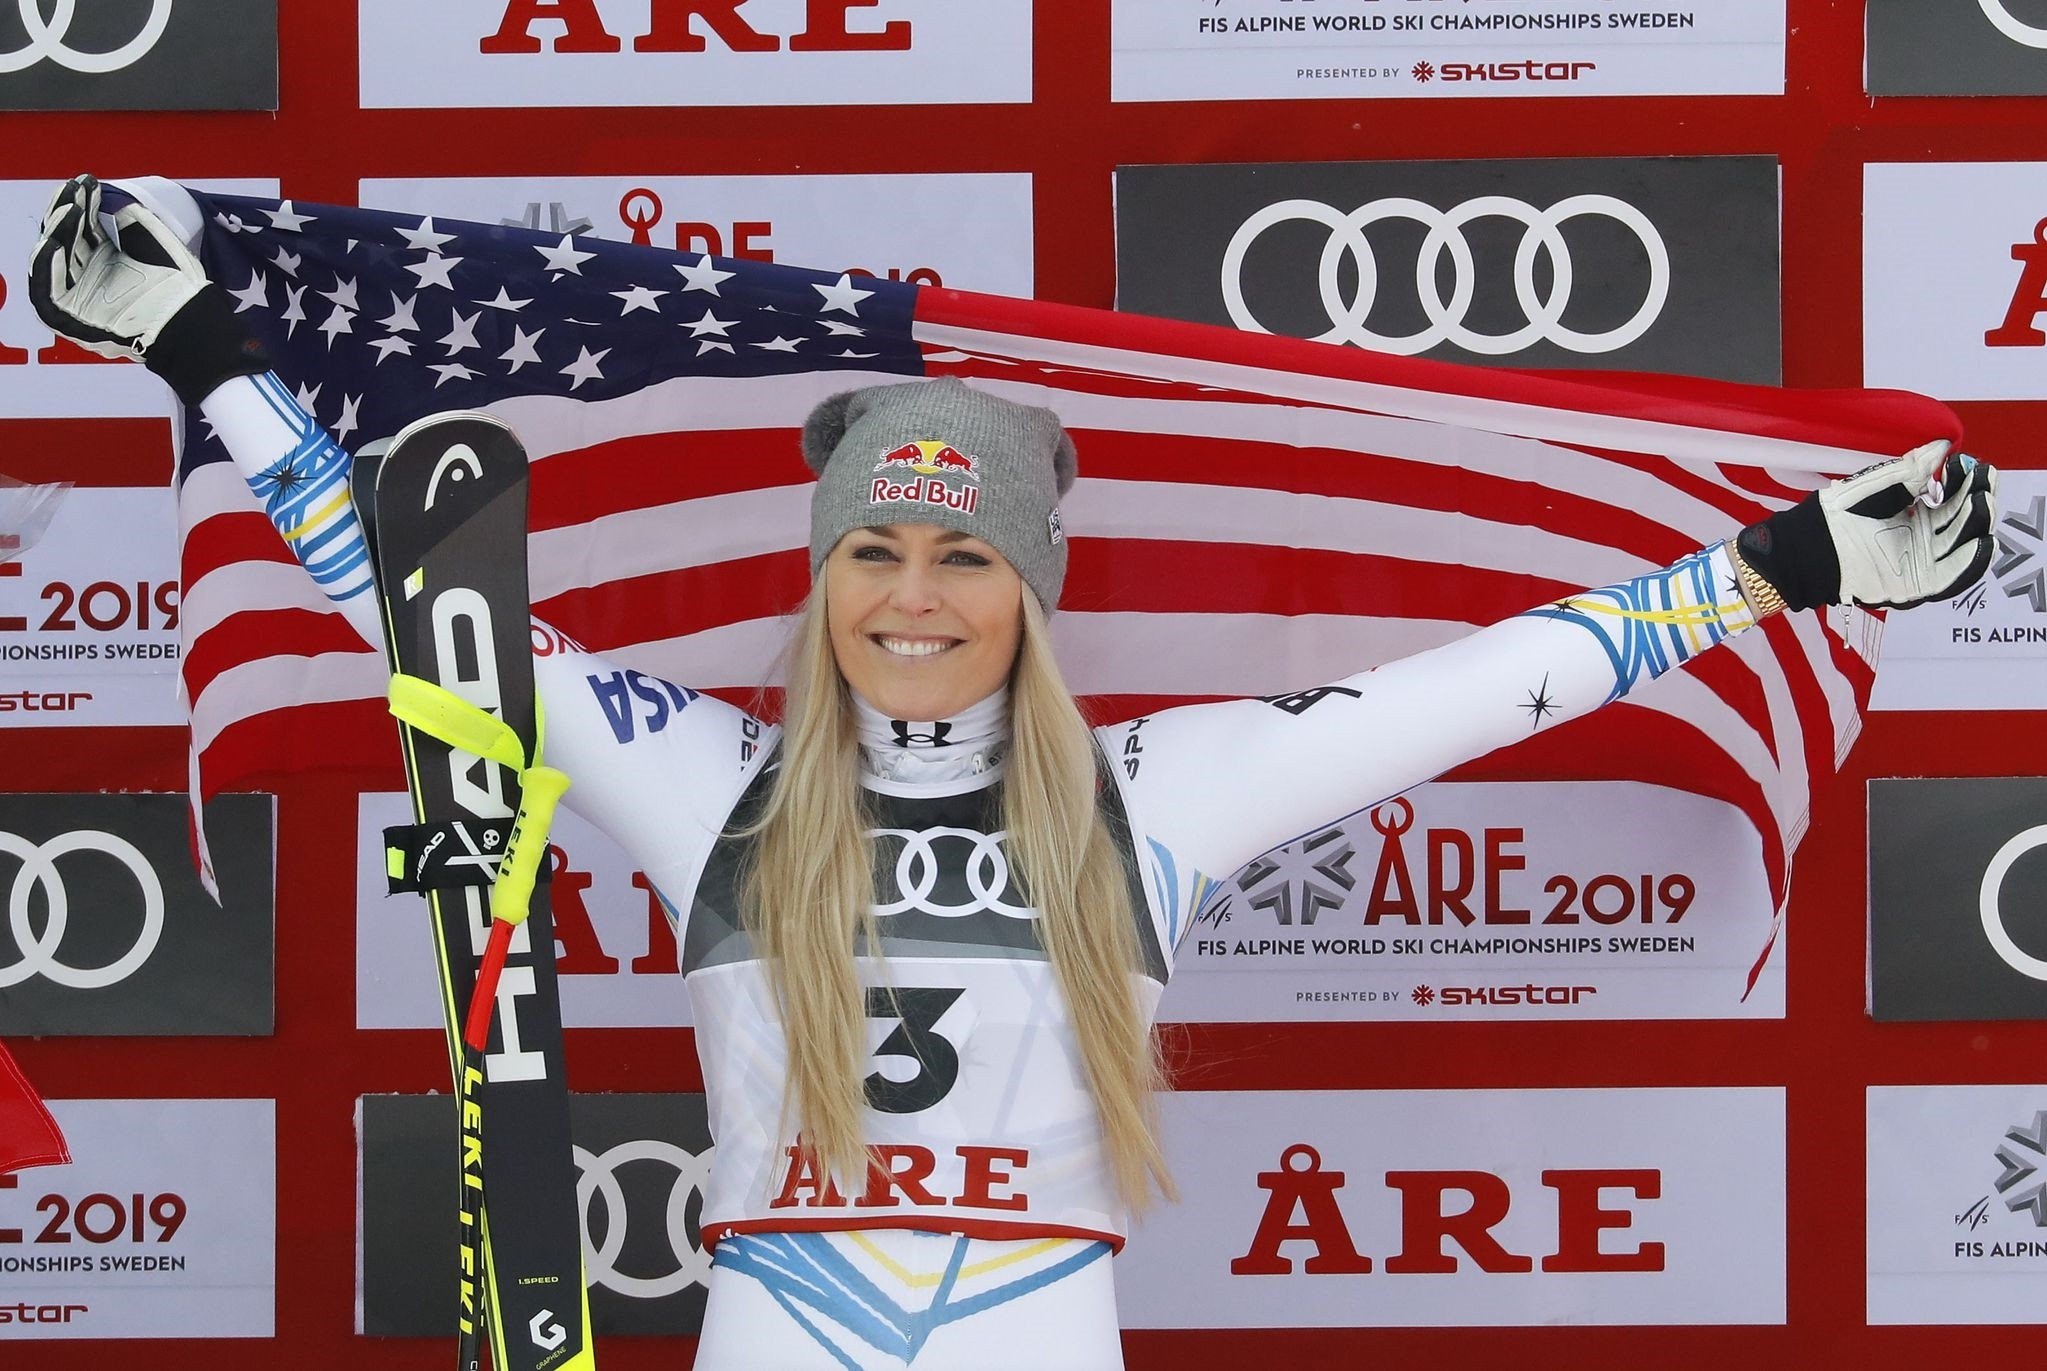 Lindsey Vonn of the U.S.  celebrates her bronze medal win on the podium, in Are, Sweden, Feb. 10, 2019.